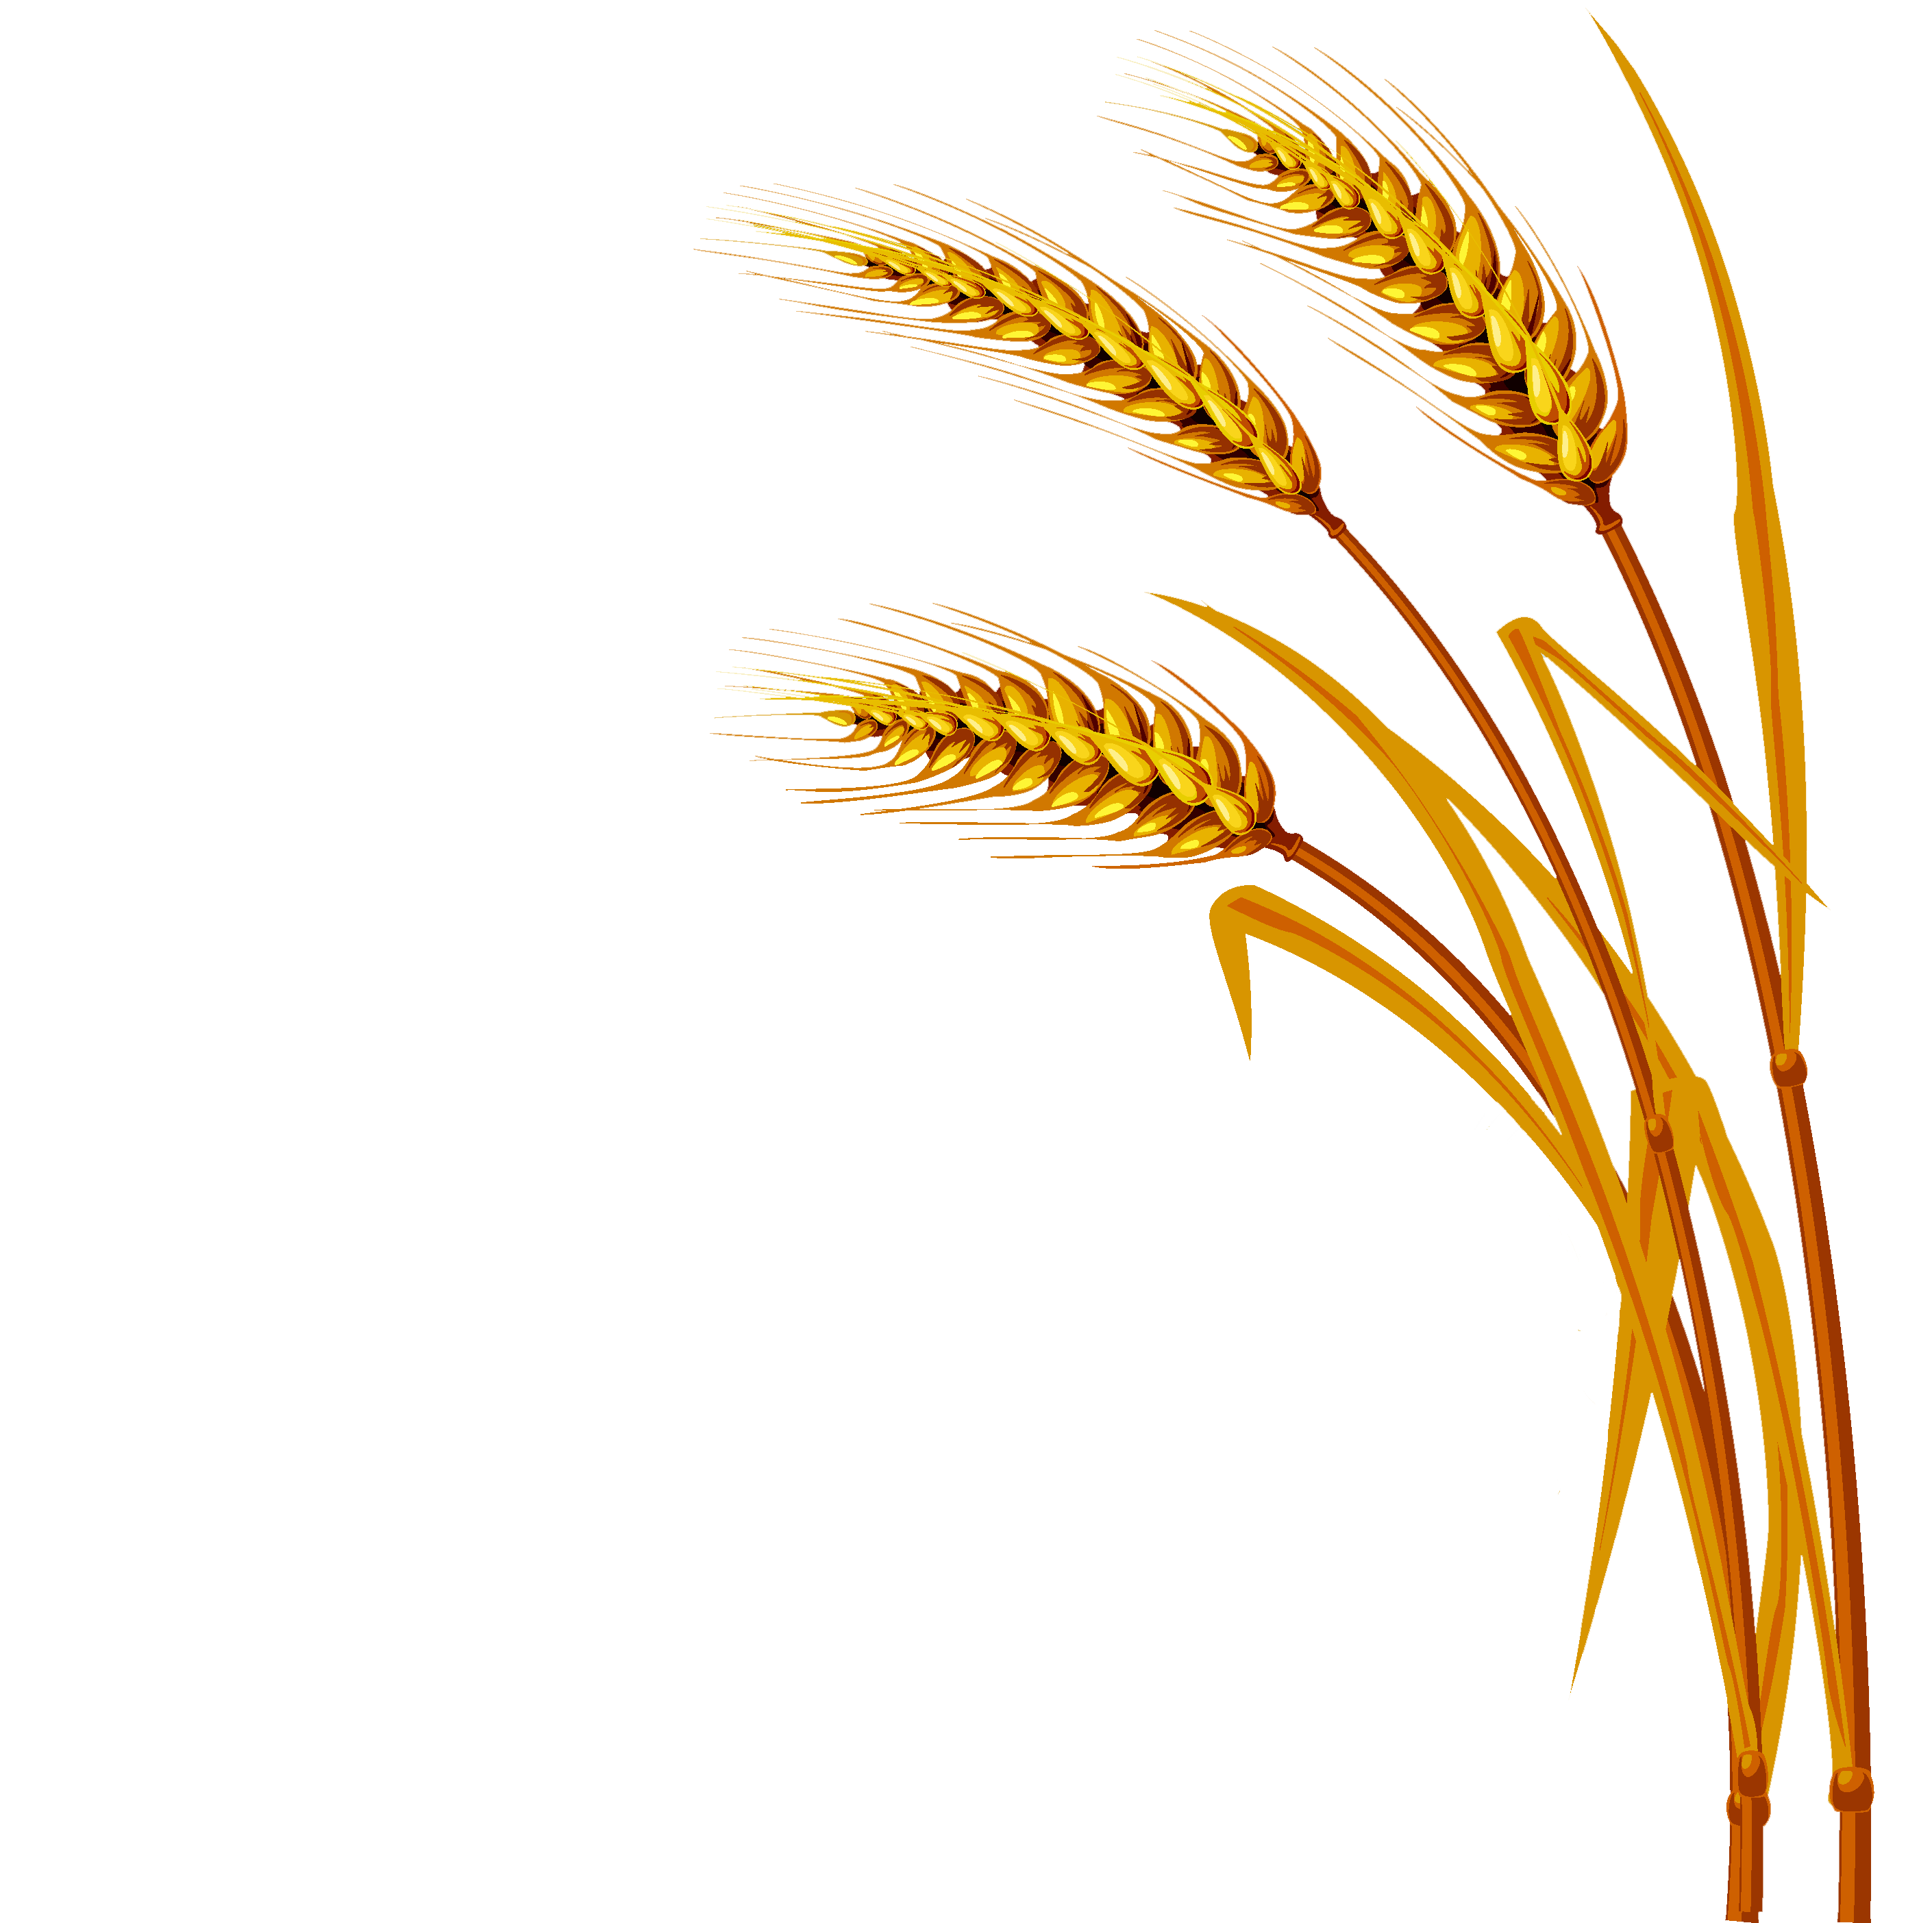 Png . Wheat clipart rye